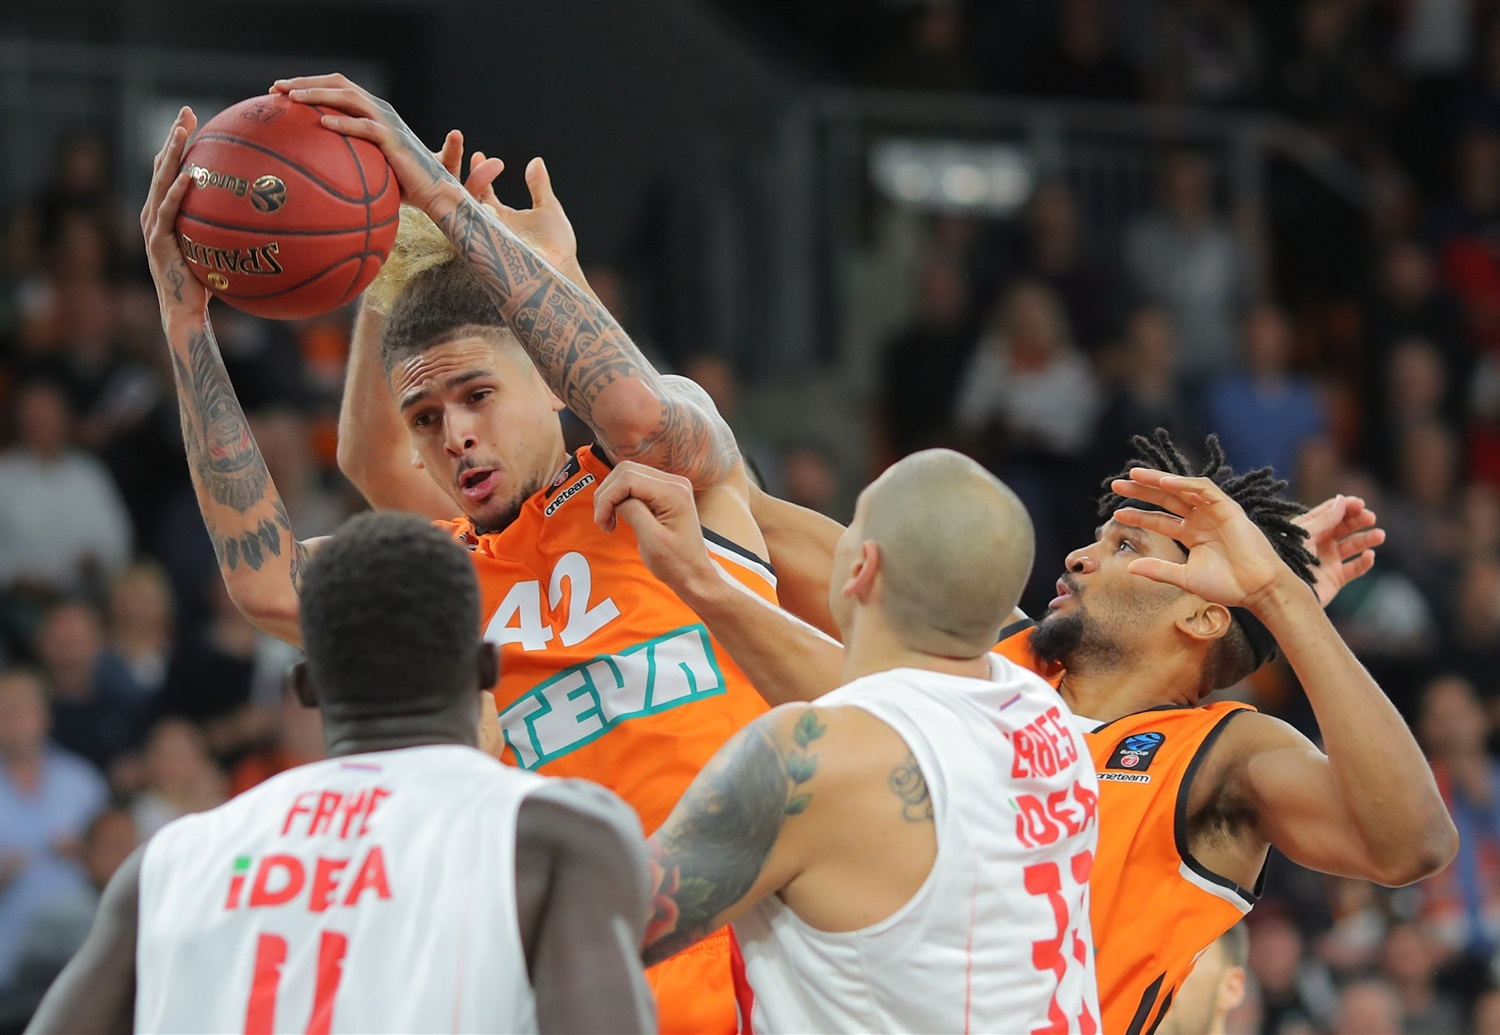 Isaac Fotu - ratiopharm Ulm (photo Ulm - Florian Achberger) - EC18